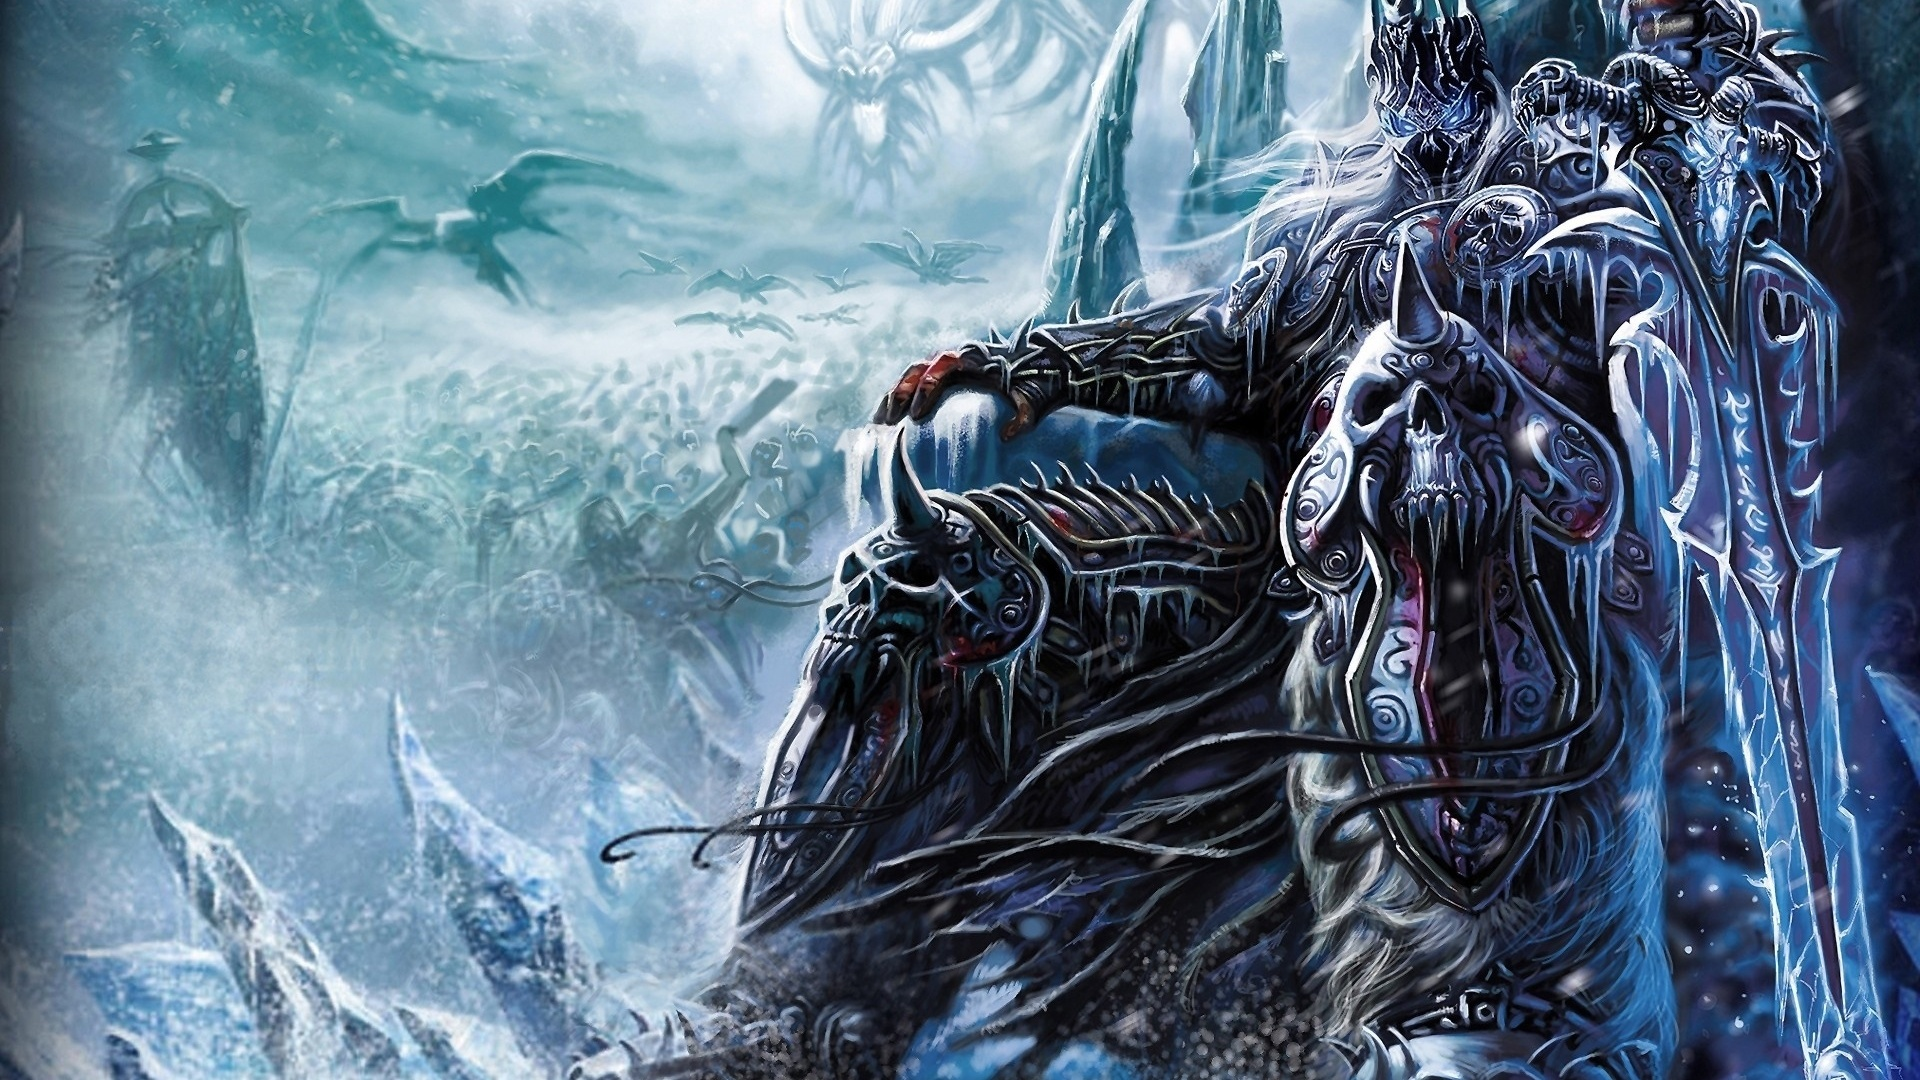 Free Download Games Wallpapers Hd Wow Arthas Background Hd